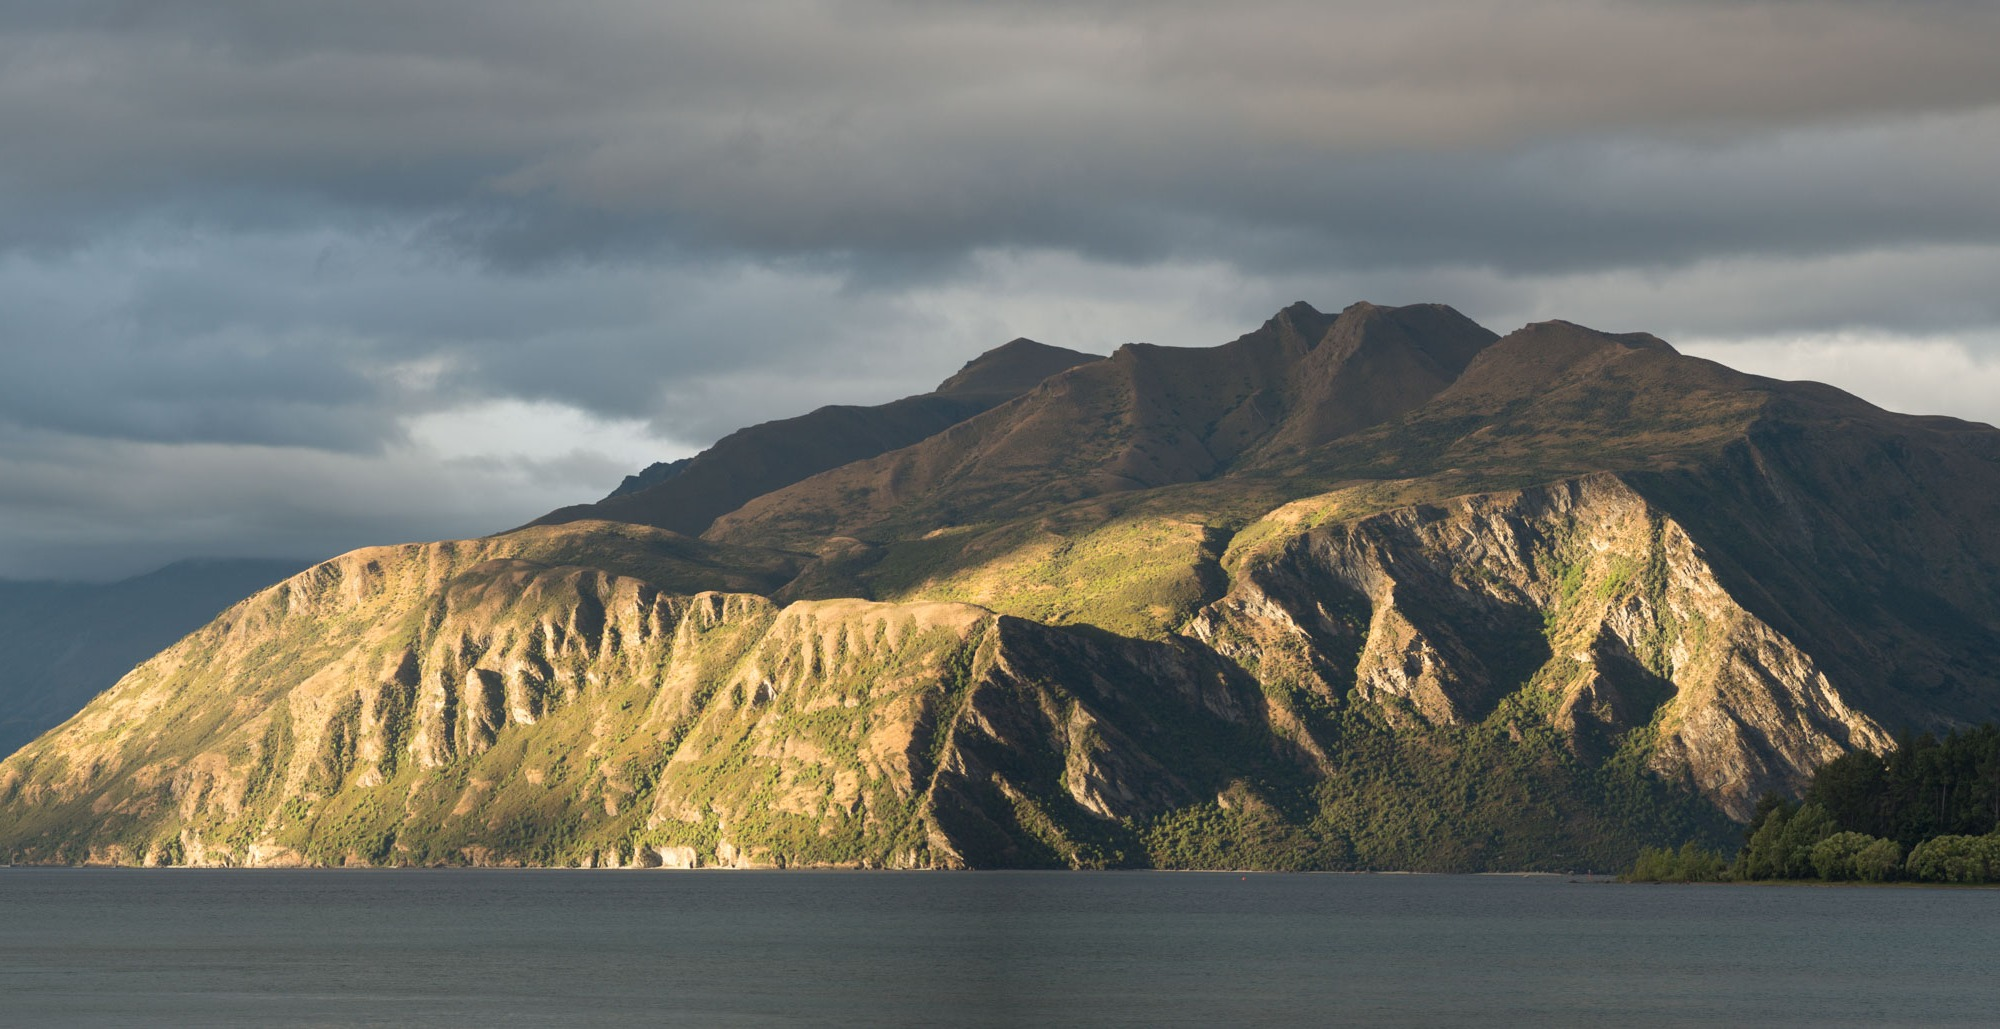 Stevensons arm in Lake Wanaka lit up by the evening light.